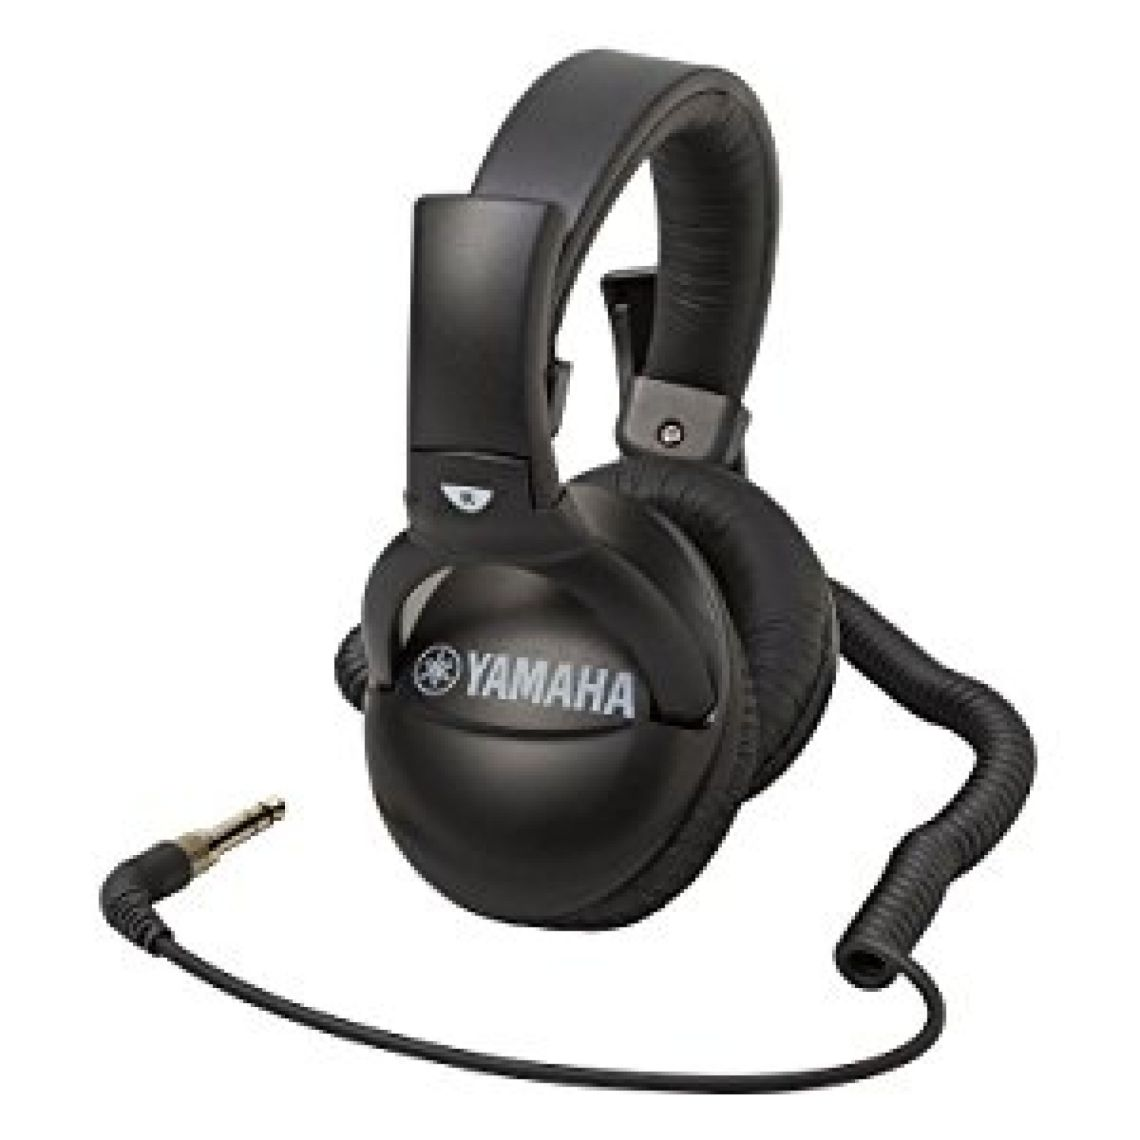 Amazon.com: Yamaha RH50A Professional Headphones: Musical Instruments